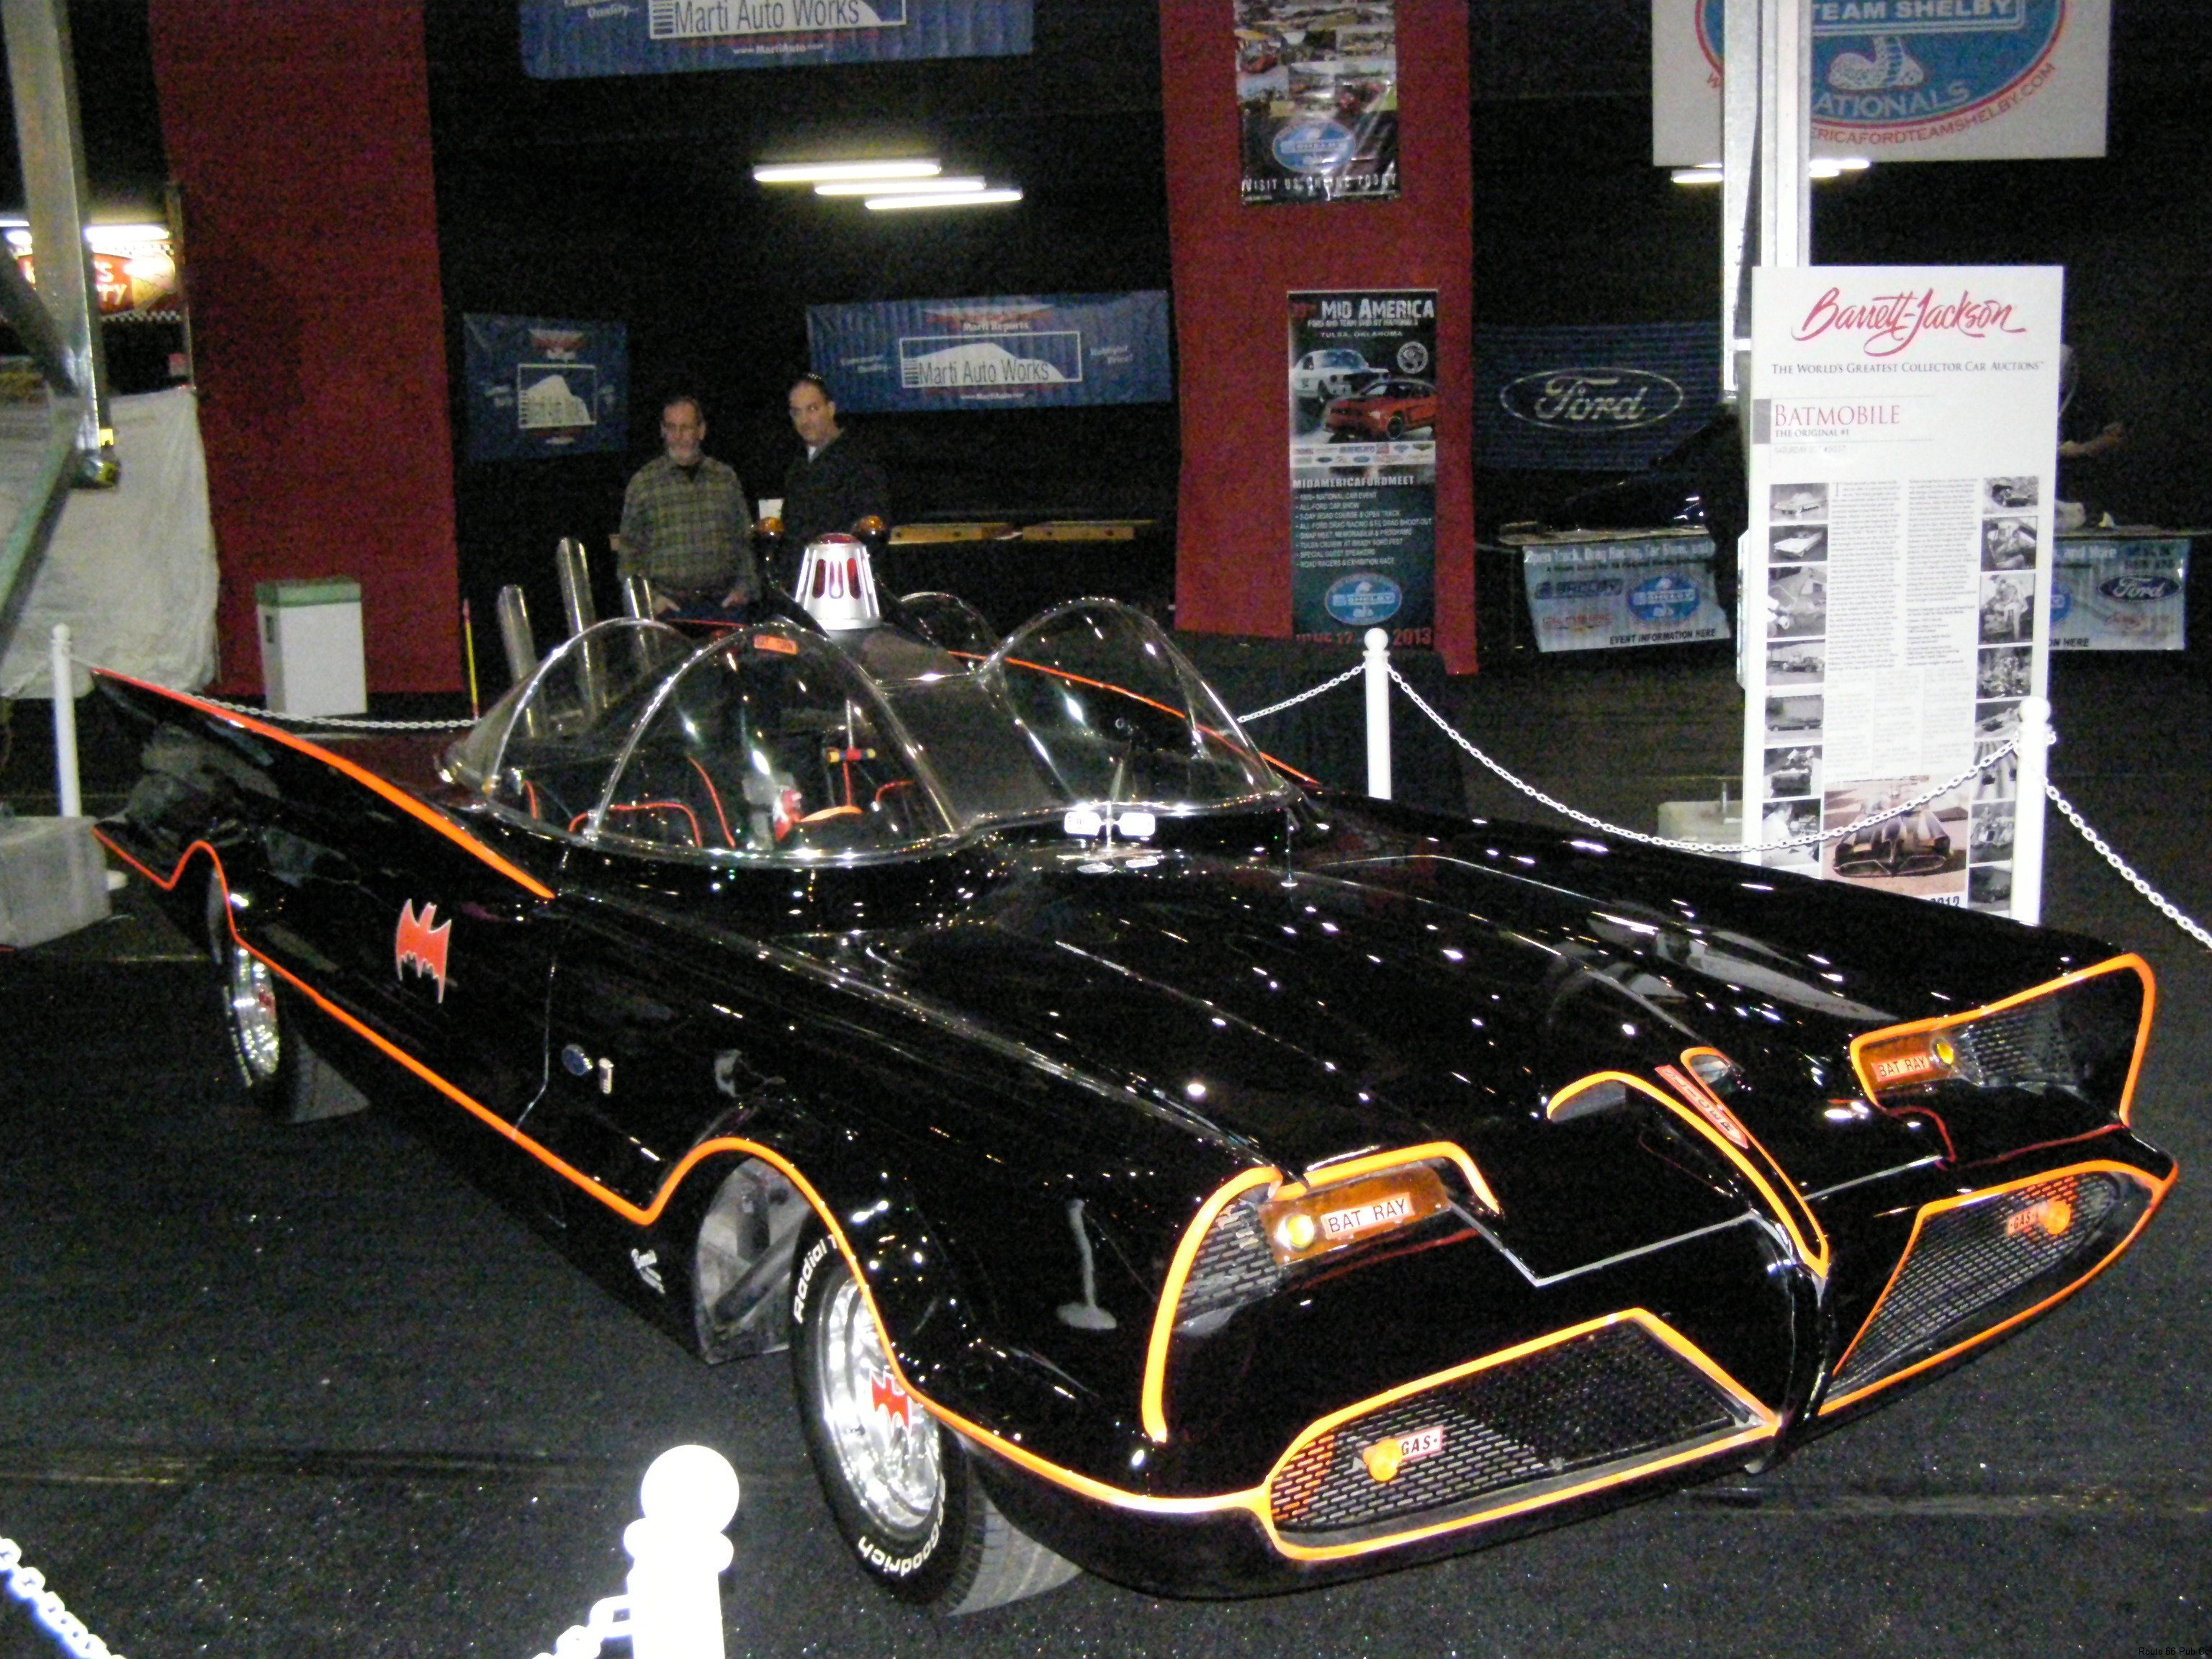 Batmobile view 2